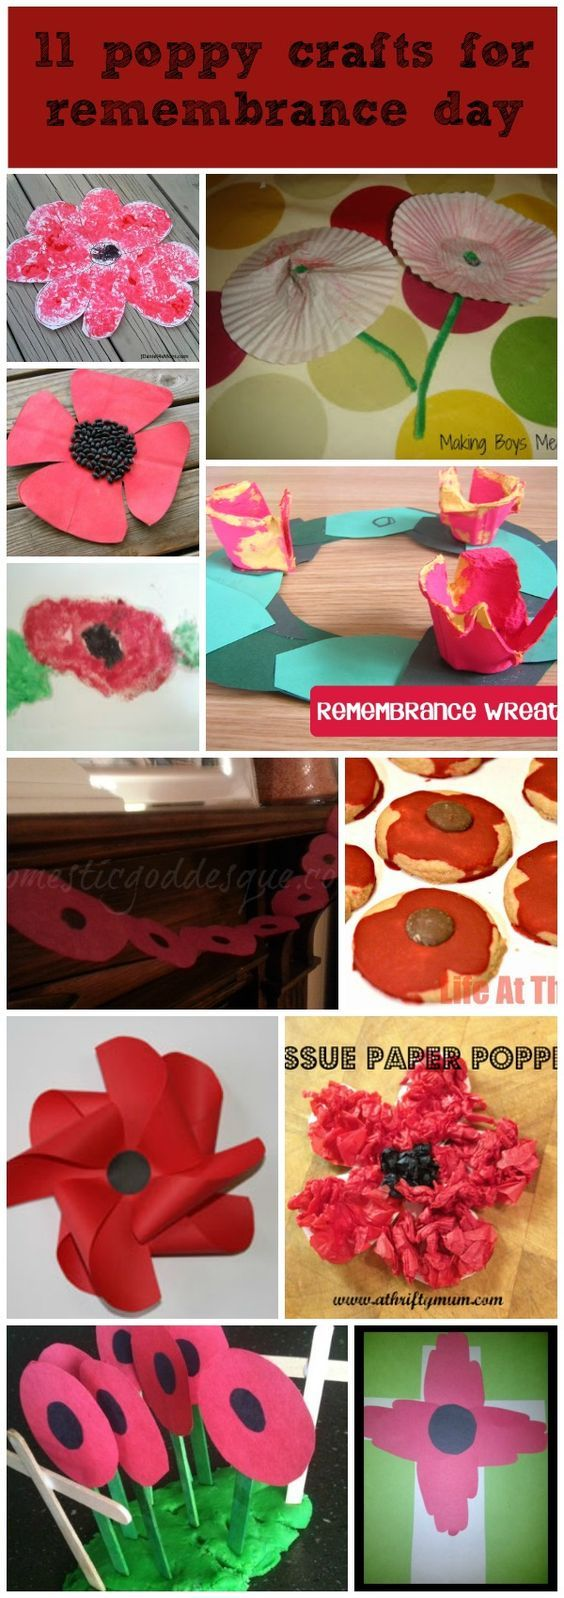 11 poppy crafts, art or food for remembrance day